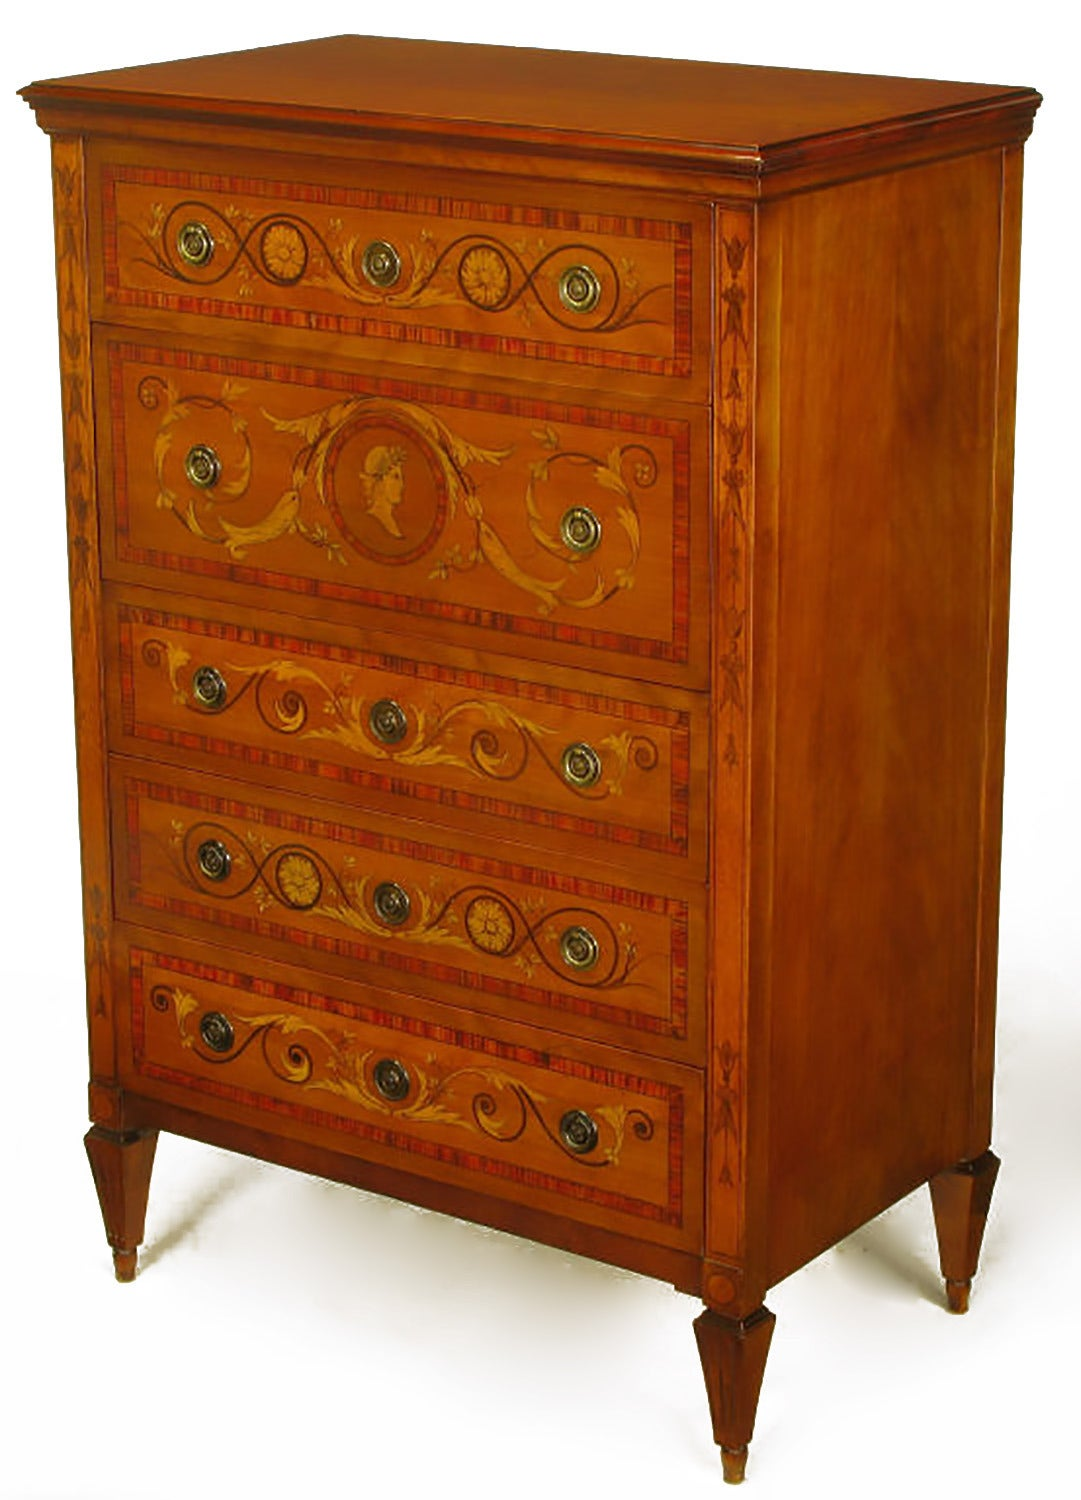 Well executed example of the hand painted furniture in the early part of the 20th century. Made to appear as northern Italian style marquetry pieces from the 19th century. Very realistic appearing ribbon mahogany border to each drawer front and even